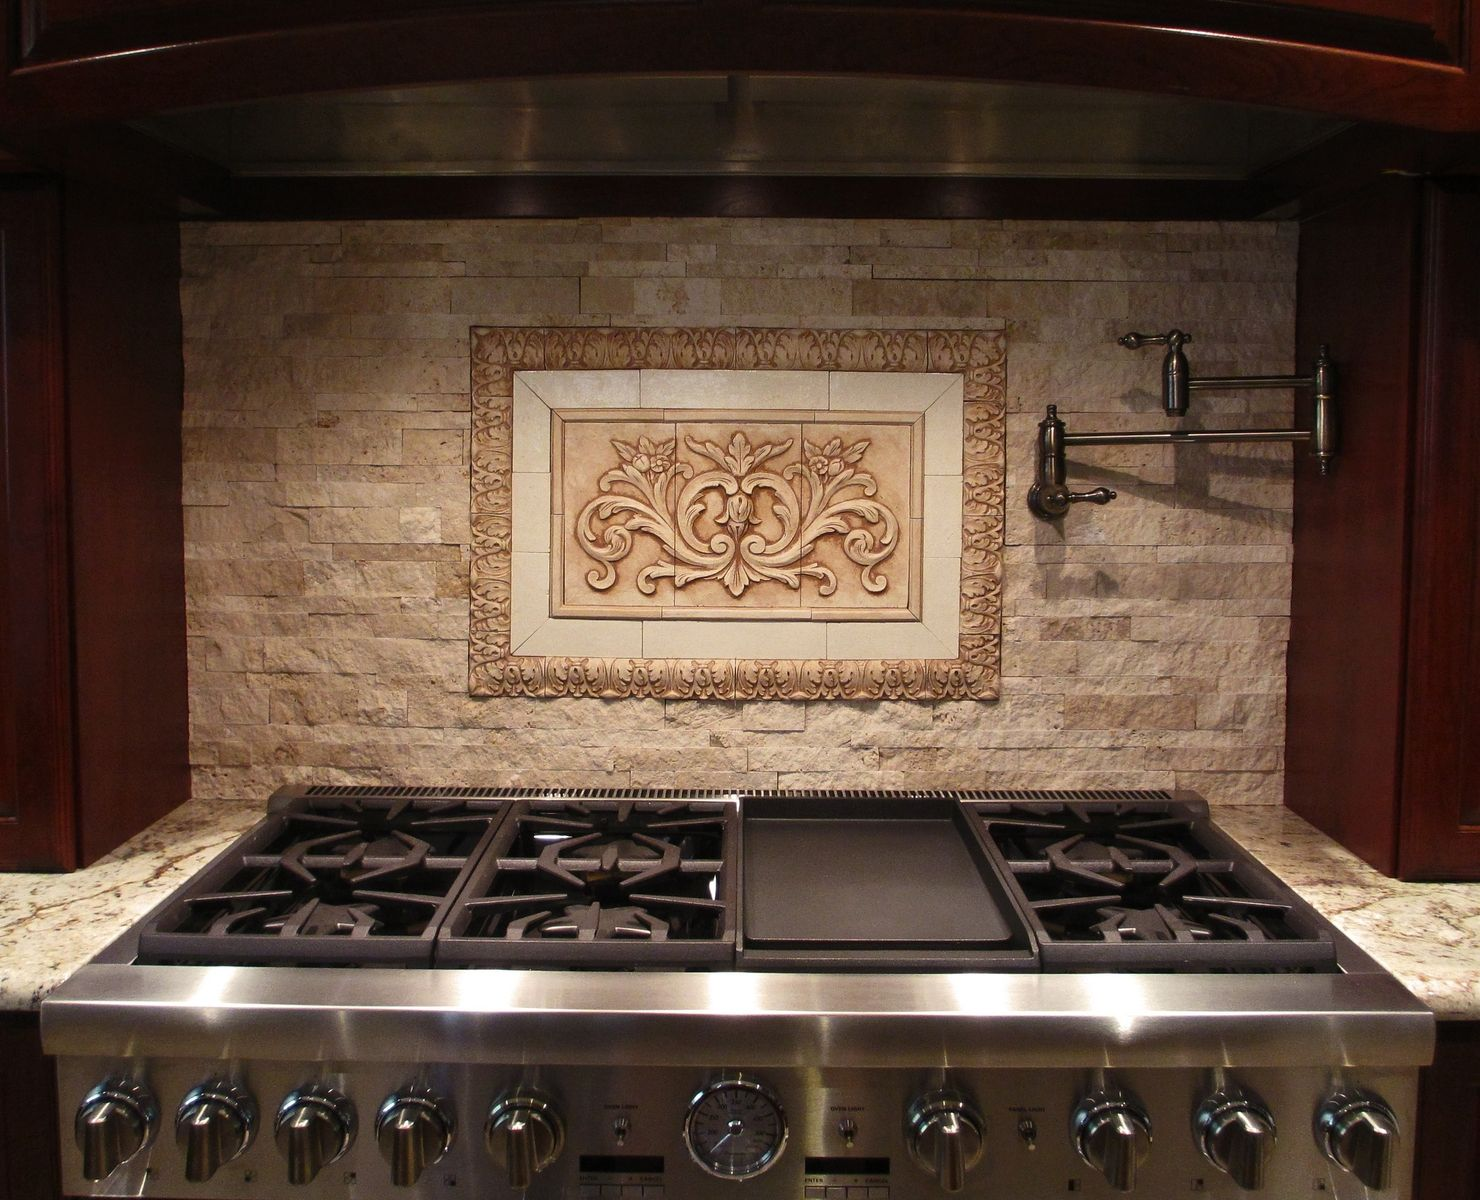 backsplash behind cooktop ideas with Kitchen Backsplash Tile on Kitchen Backsplash Tile How High as well 39782 Pebble Stone Shower Floor Bathroom Traditional With None also 3 Creative Glass Block Design Ideas For Home Design likewise Stainless Steel Backsplash Sheets as well How High Do You Hang A Range Hood.